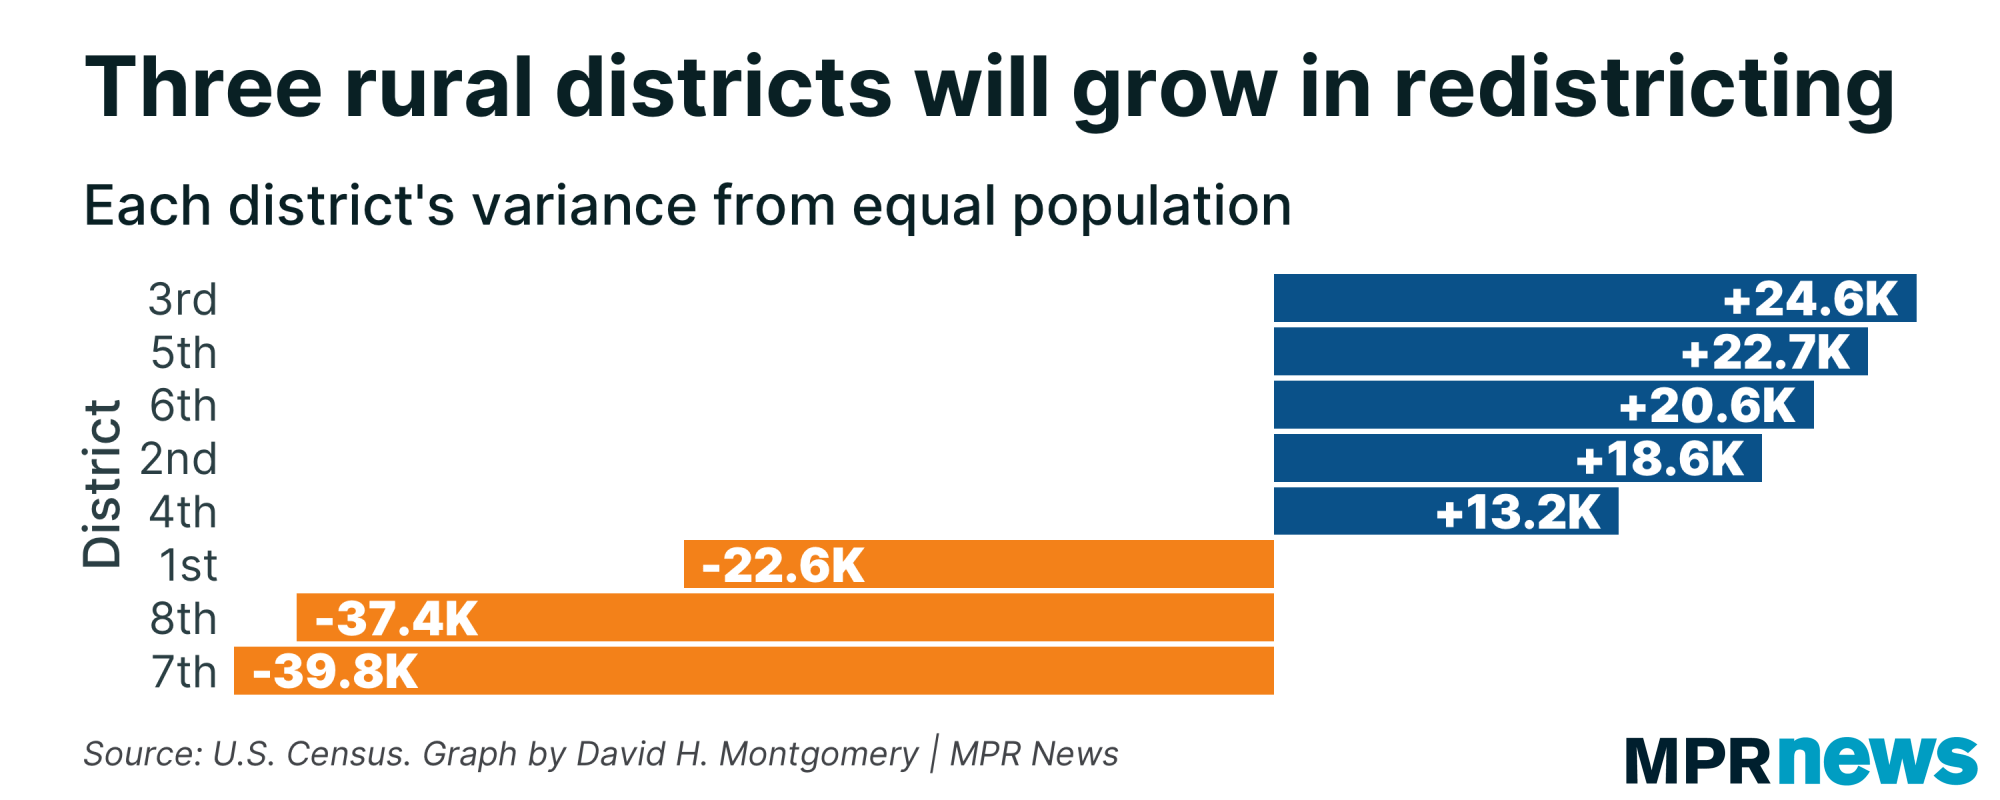 three rural districts will grow in redistricting